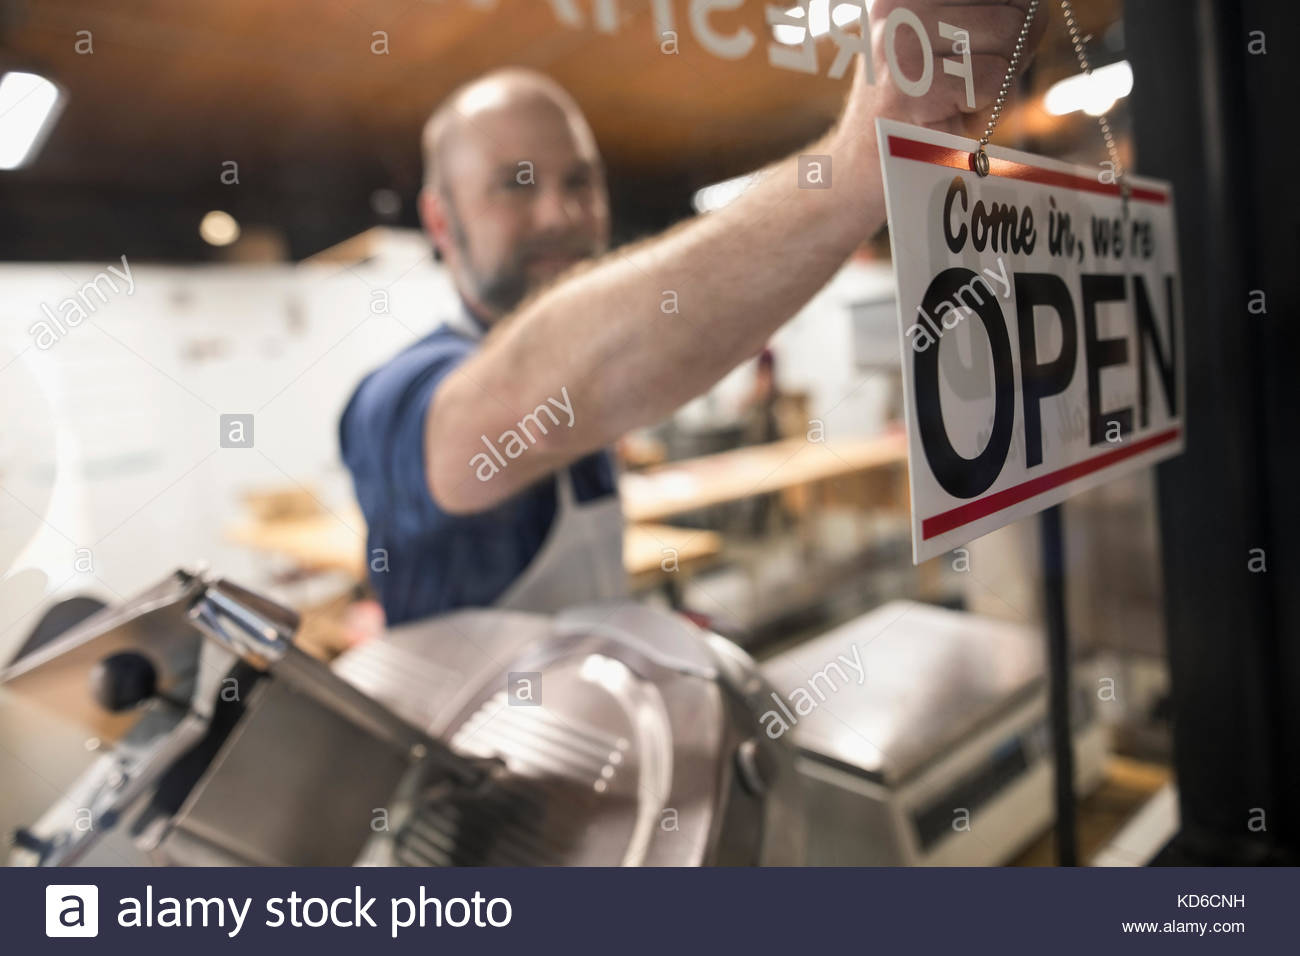 Male butcher changing open sign in butcher shop window - Stock Image